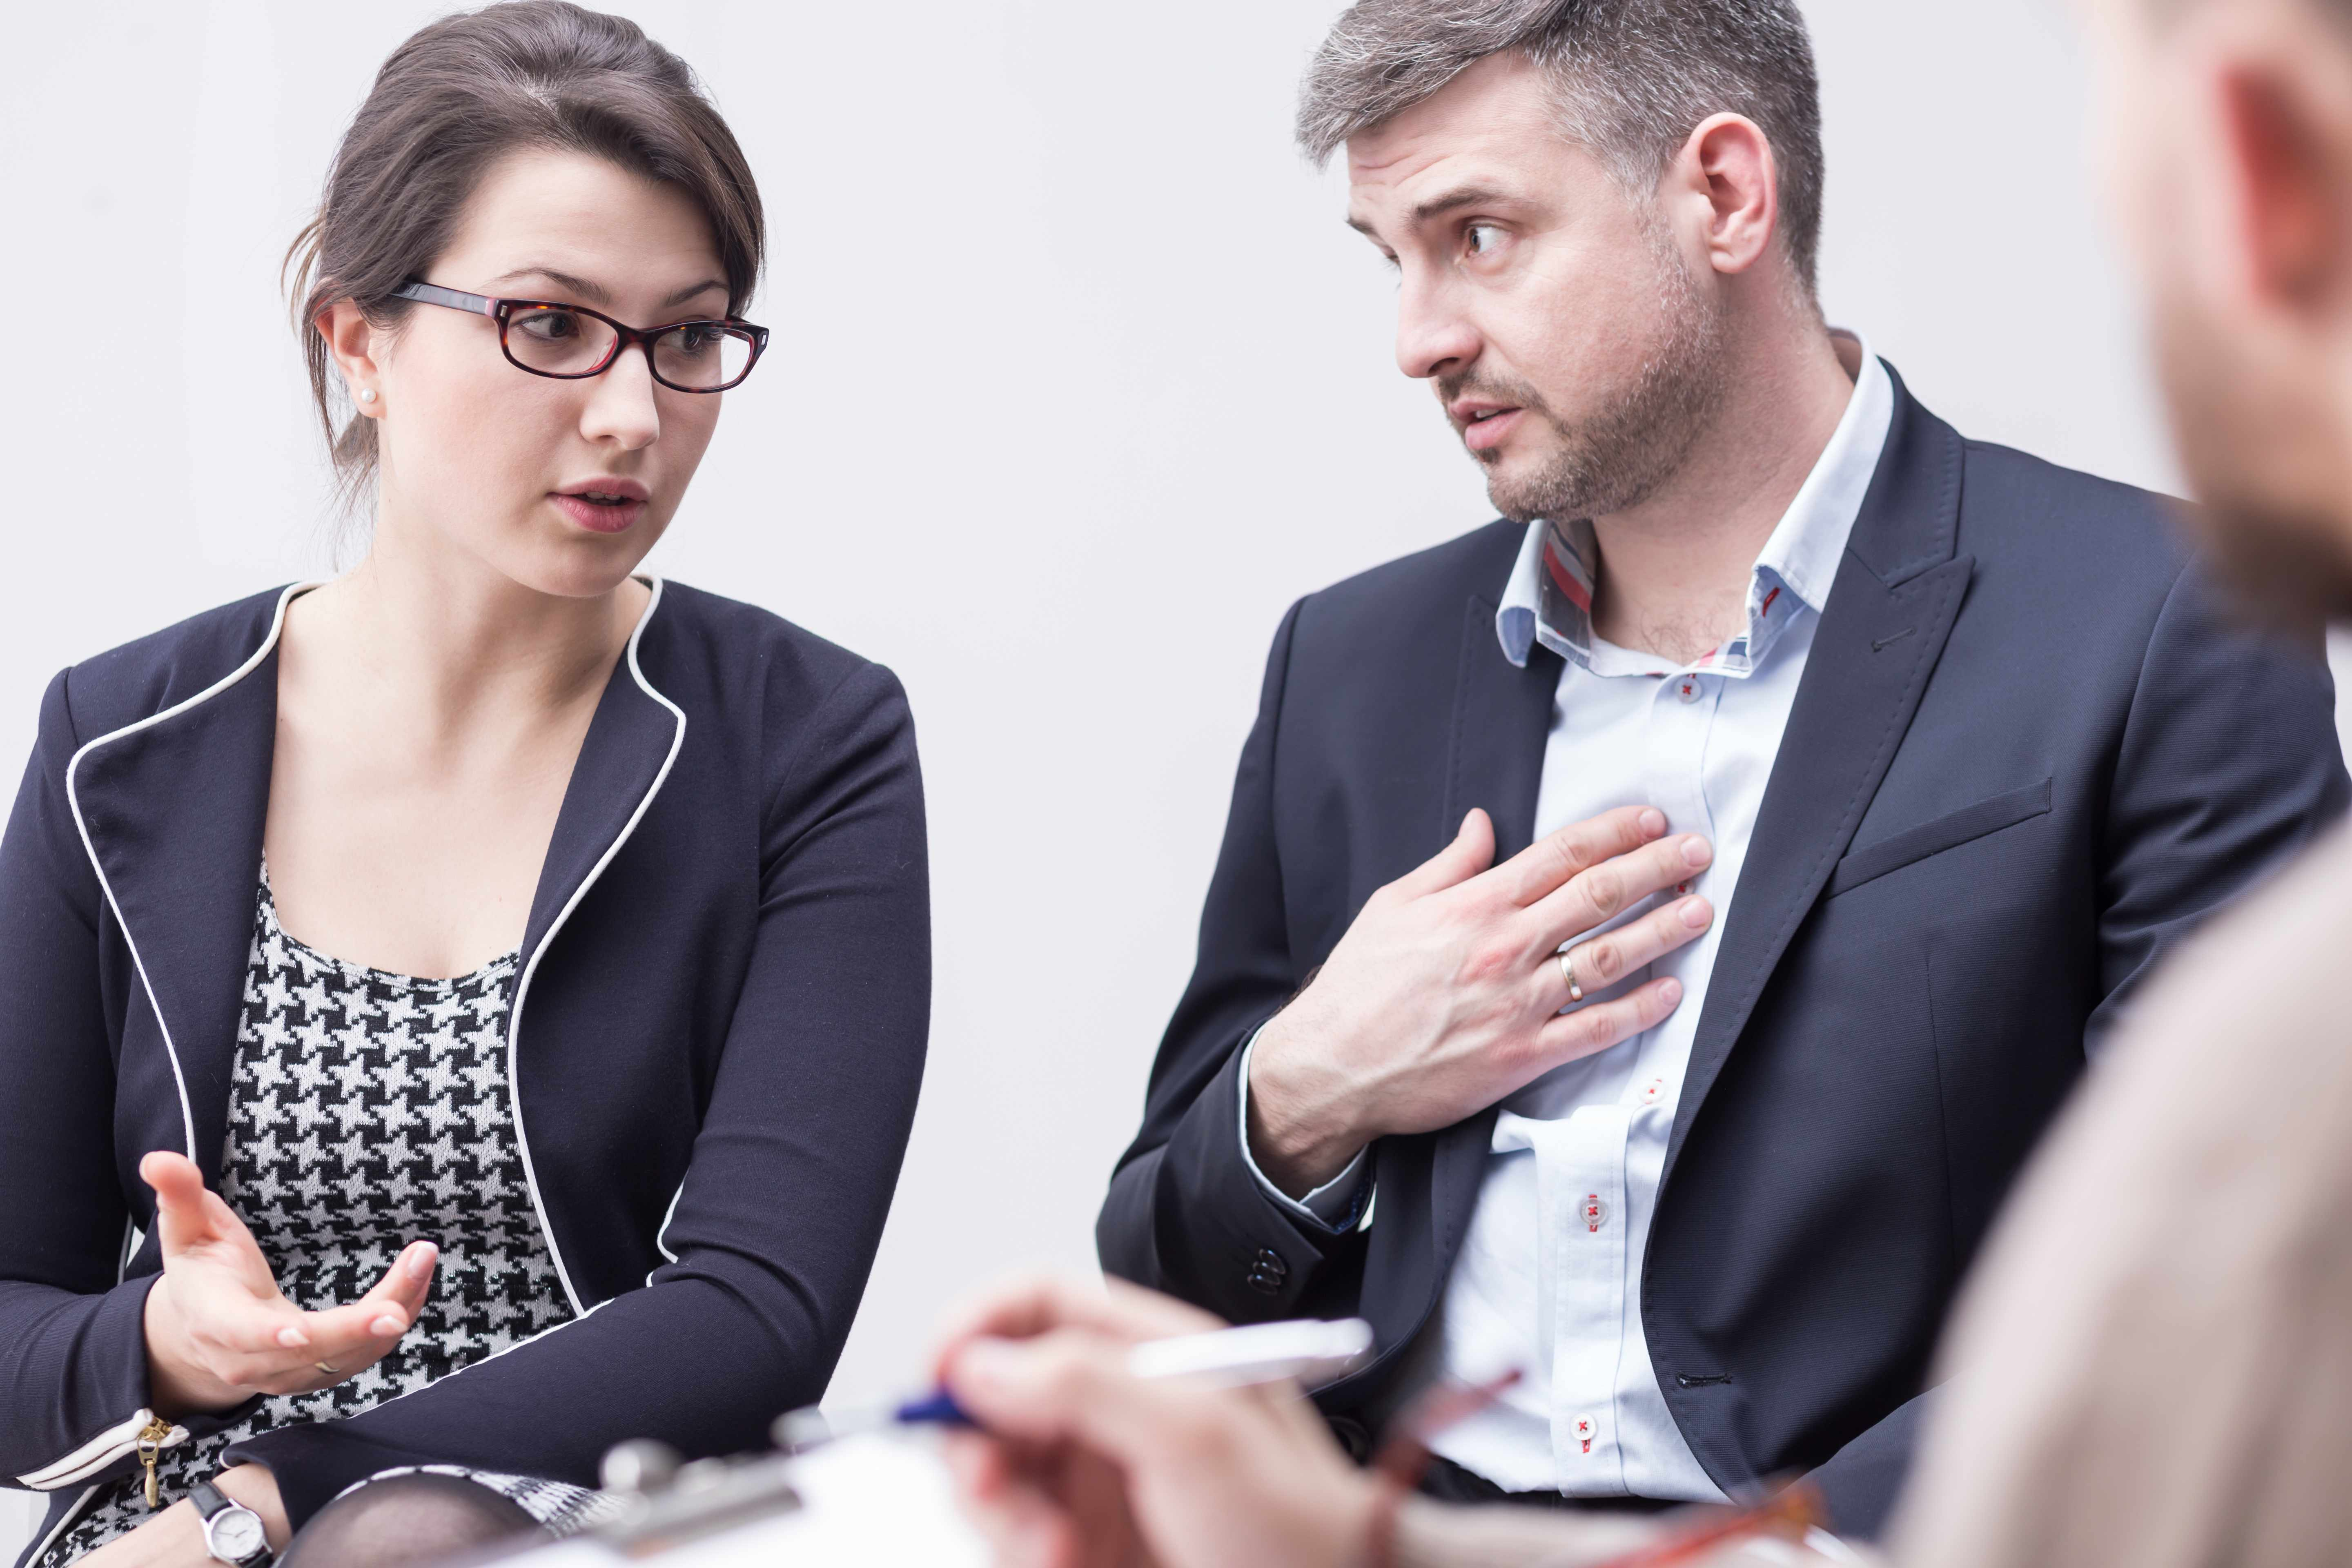 a young couple in a counseling session disagreeing and discussing problems, blaming each other